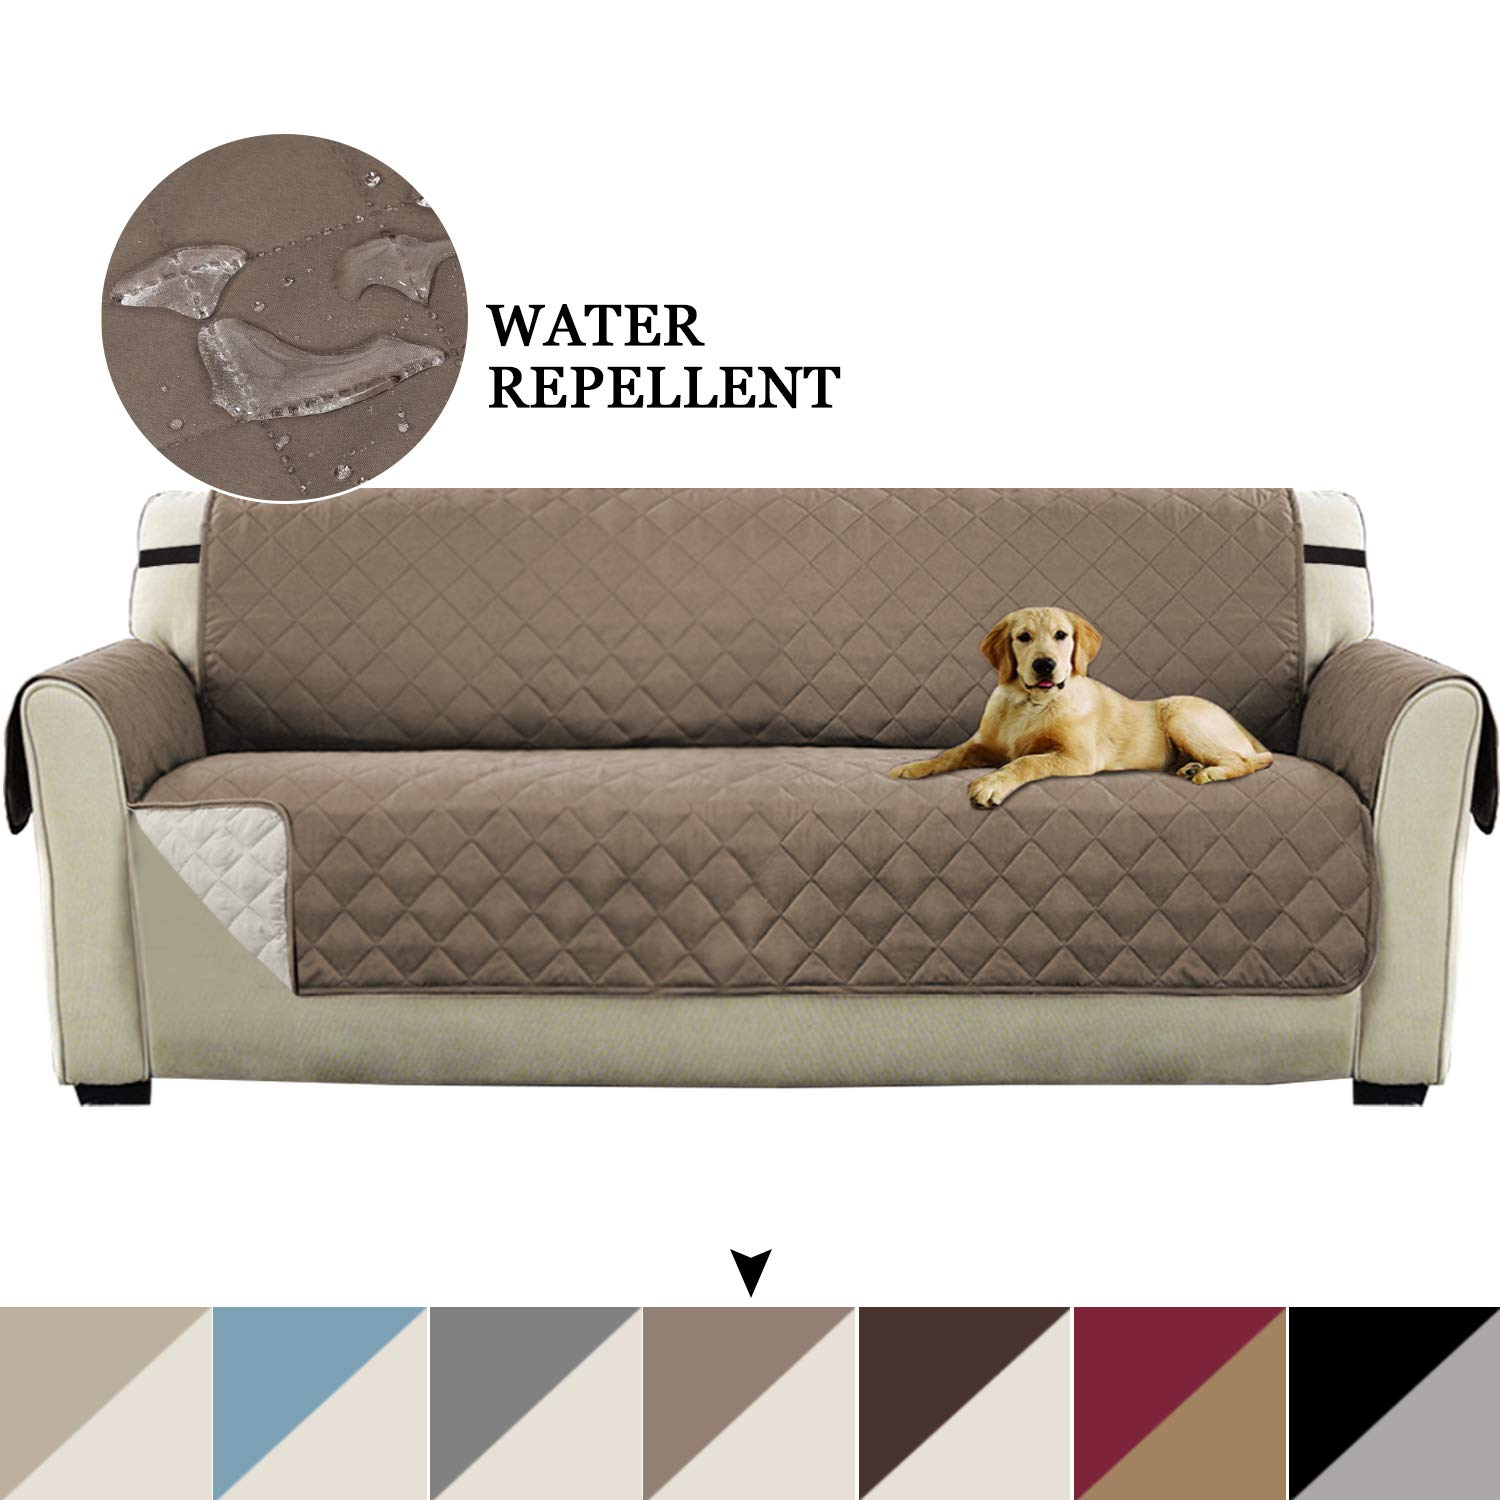 Details about Vailge Oversize Reversible Sofa Cover, Extra Large Sofa  Slipcover With 2\